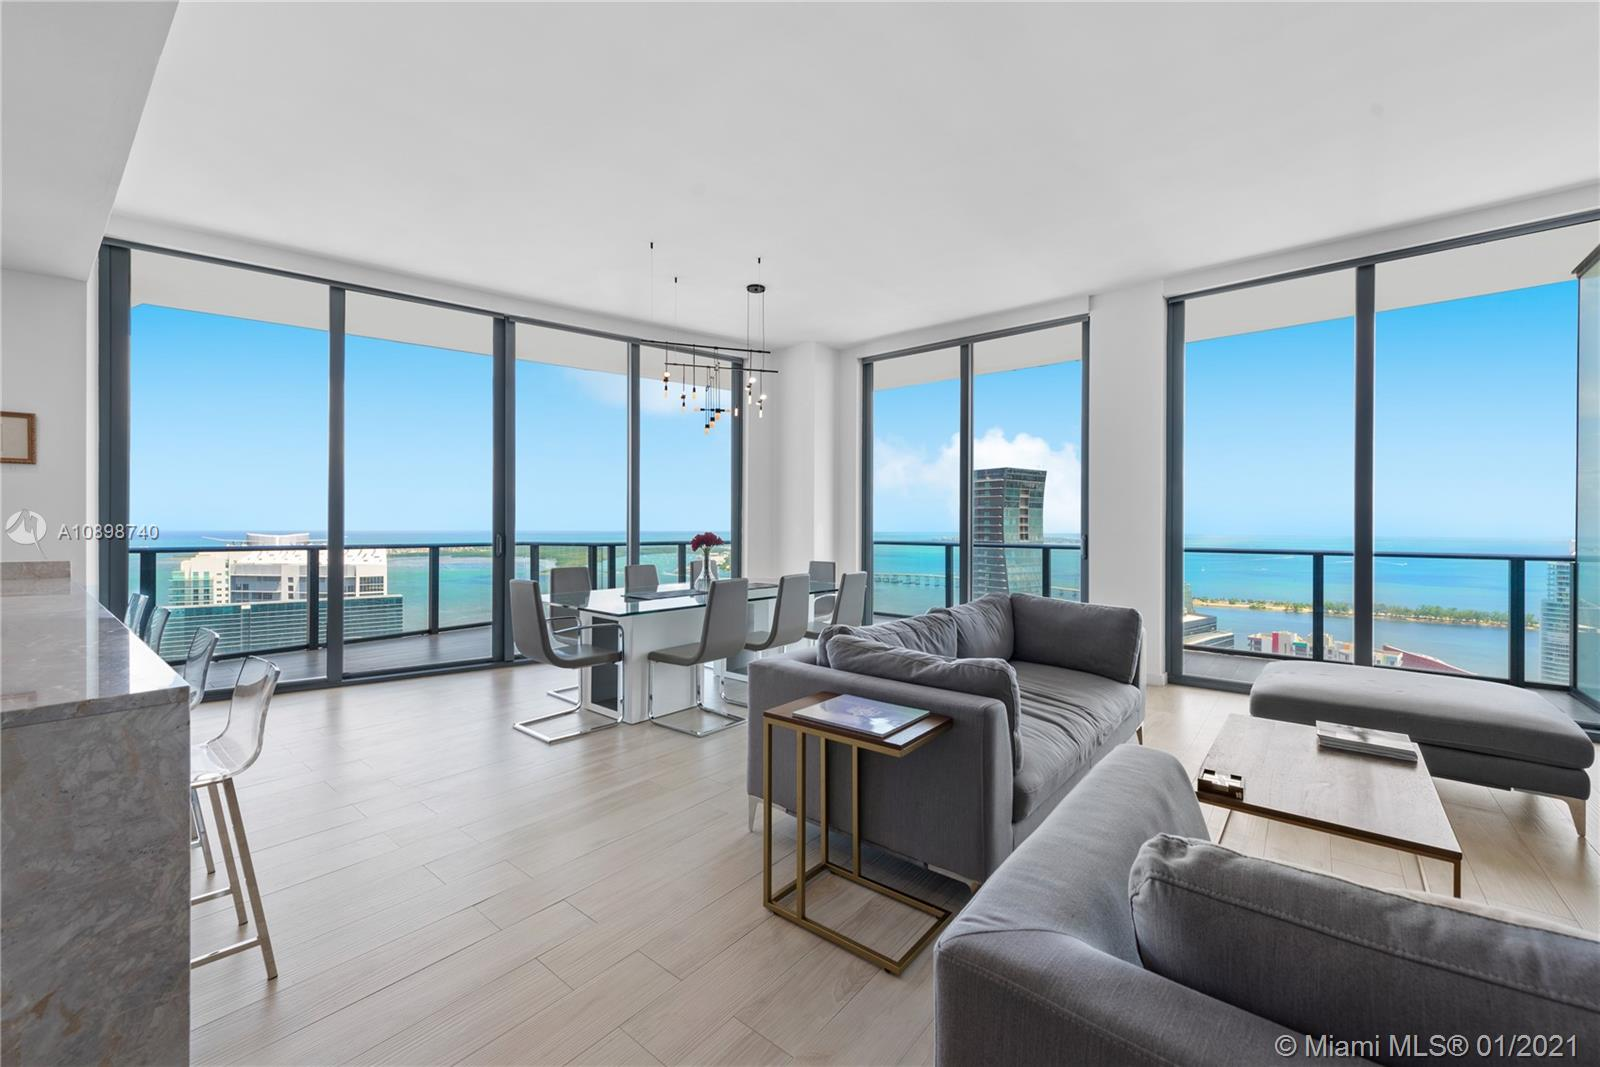 This meticulously renovated 3bed/3.5bath Penthouse uses its space to its utmost potential and is intricately designed for those who live their lives with an inherent sense of style and sophistication. Penthouse 5205 offers incredibly unobstructed views from East to Miami Beach and South to The Keys. The oversized Owner's suite features a sleeping and sitting area and large walk-in closet. Scenes of the bay, ocean, Miami Beach, and Coconut Grove can be enjoyed from the wrap-around balcony. Includes 2 garage spaces on the 1st level of parking and an extra large storage area. With Outstanding amenities such as a rooftop pool, gym, spa, billiard room, private theatre, kids' room, party room, World class Fi'Lia restaurant and Saam bar, SLS at Brickell paints the details of a life well-lived.